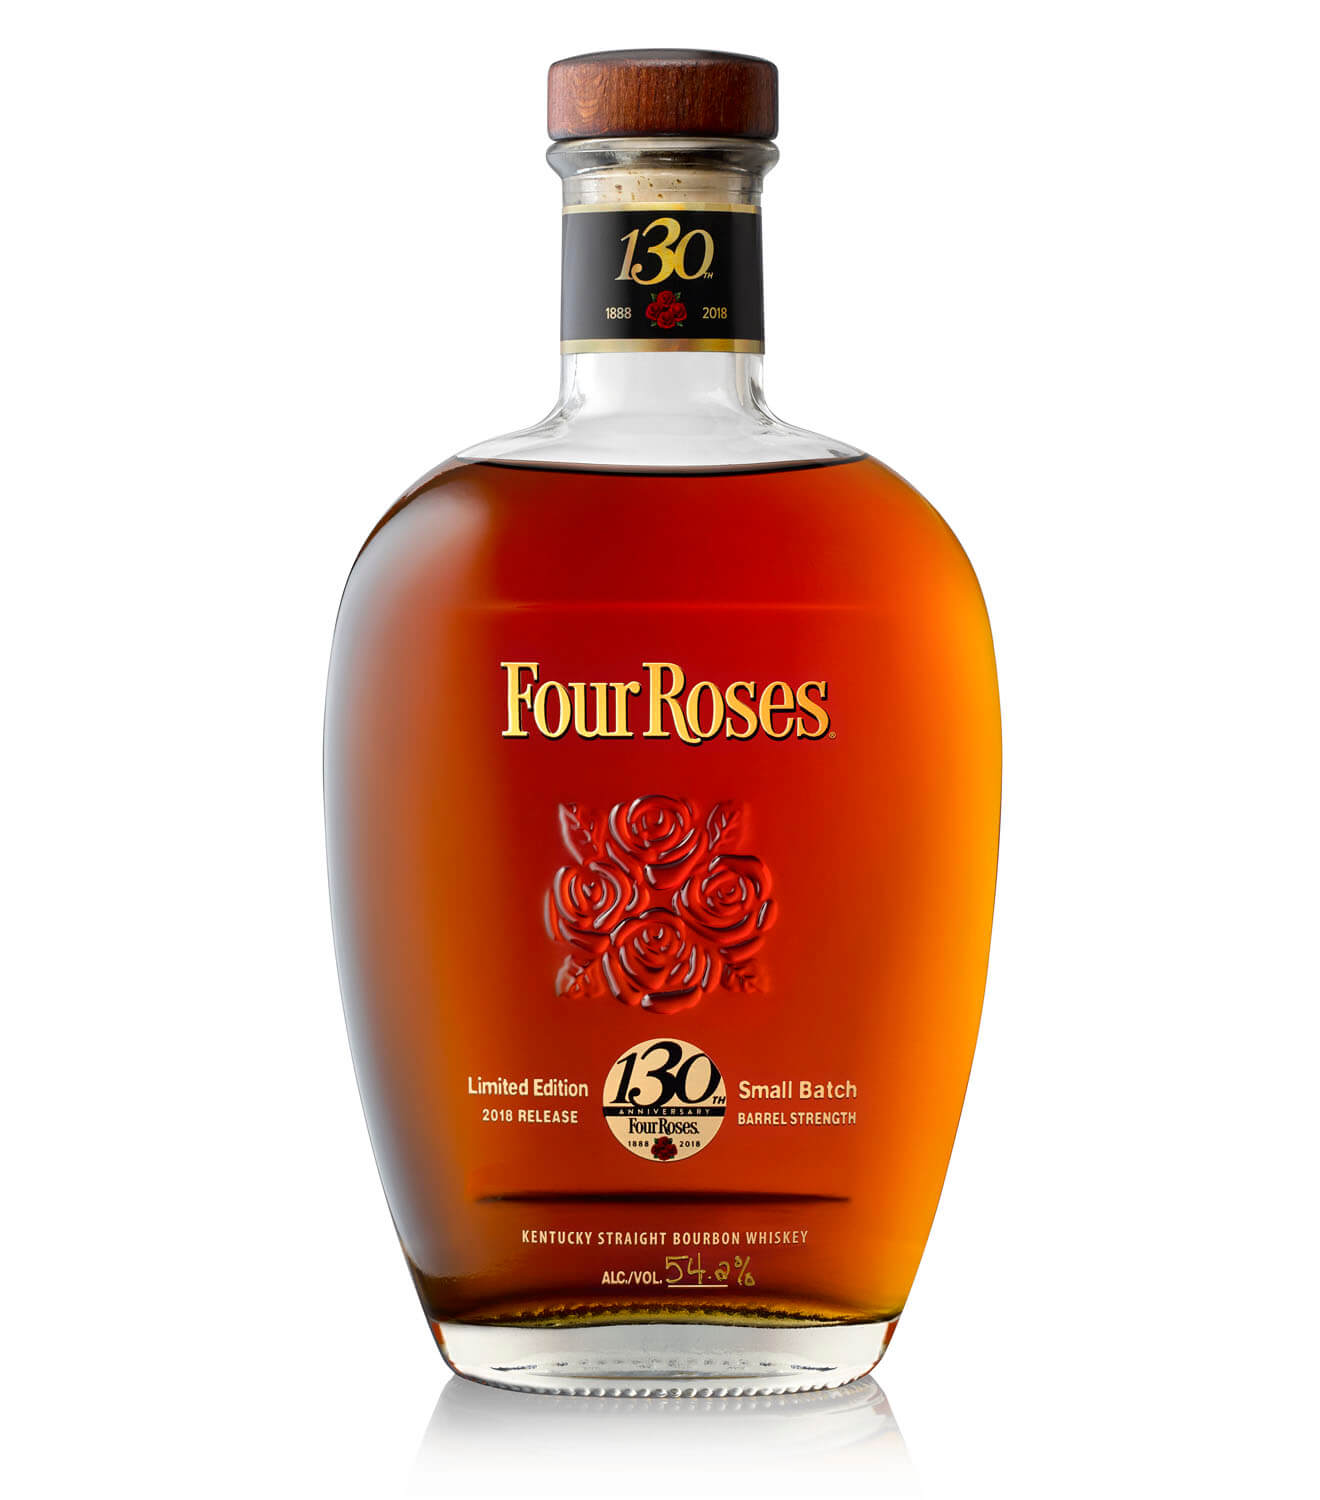 Four Roses Small Batch Limited Edition 2018, bottle on white